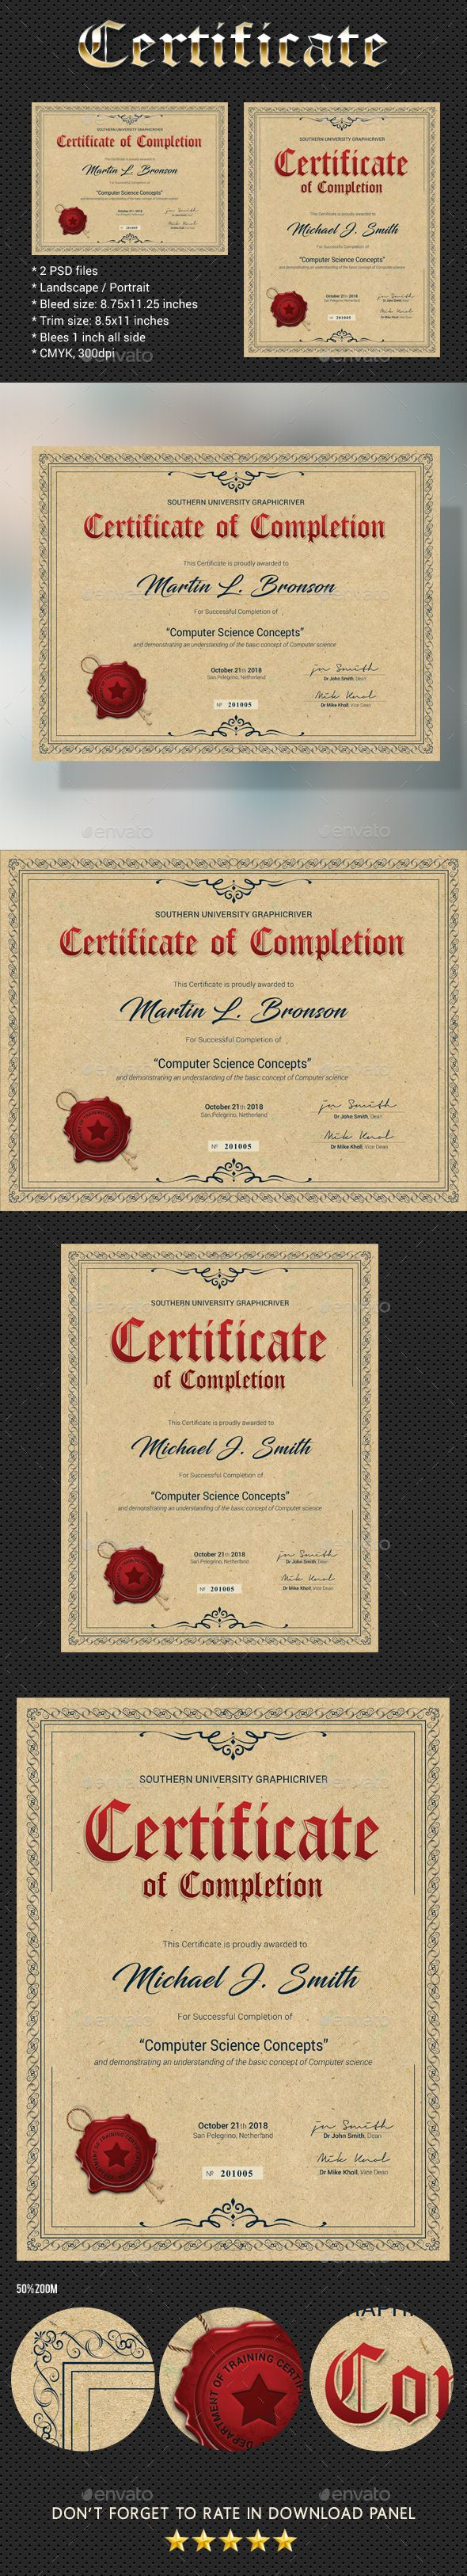 Certificate v4 certificate template and certificate design certificate v4 certificates stationery yelopaper Gallery